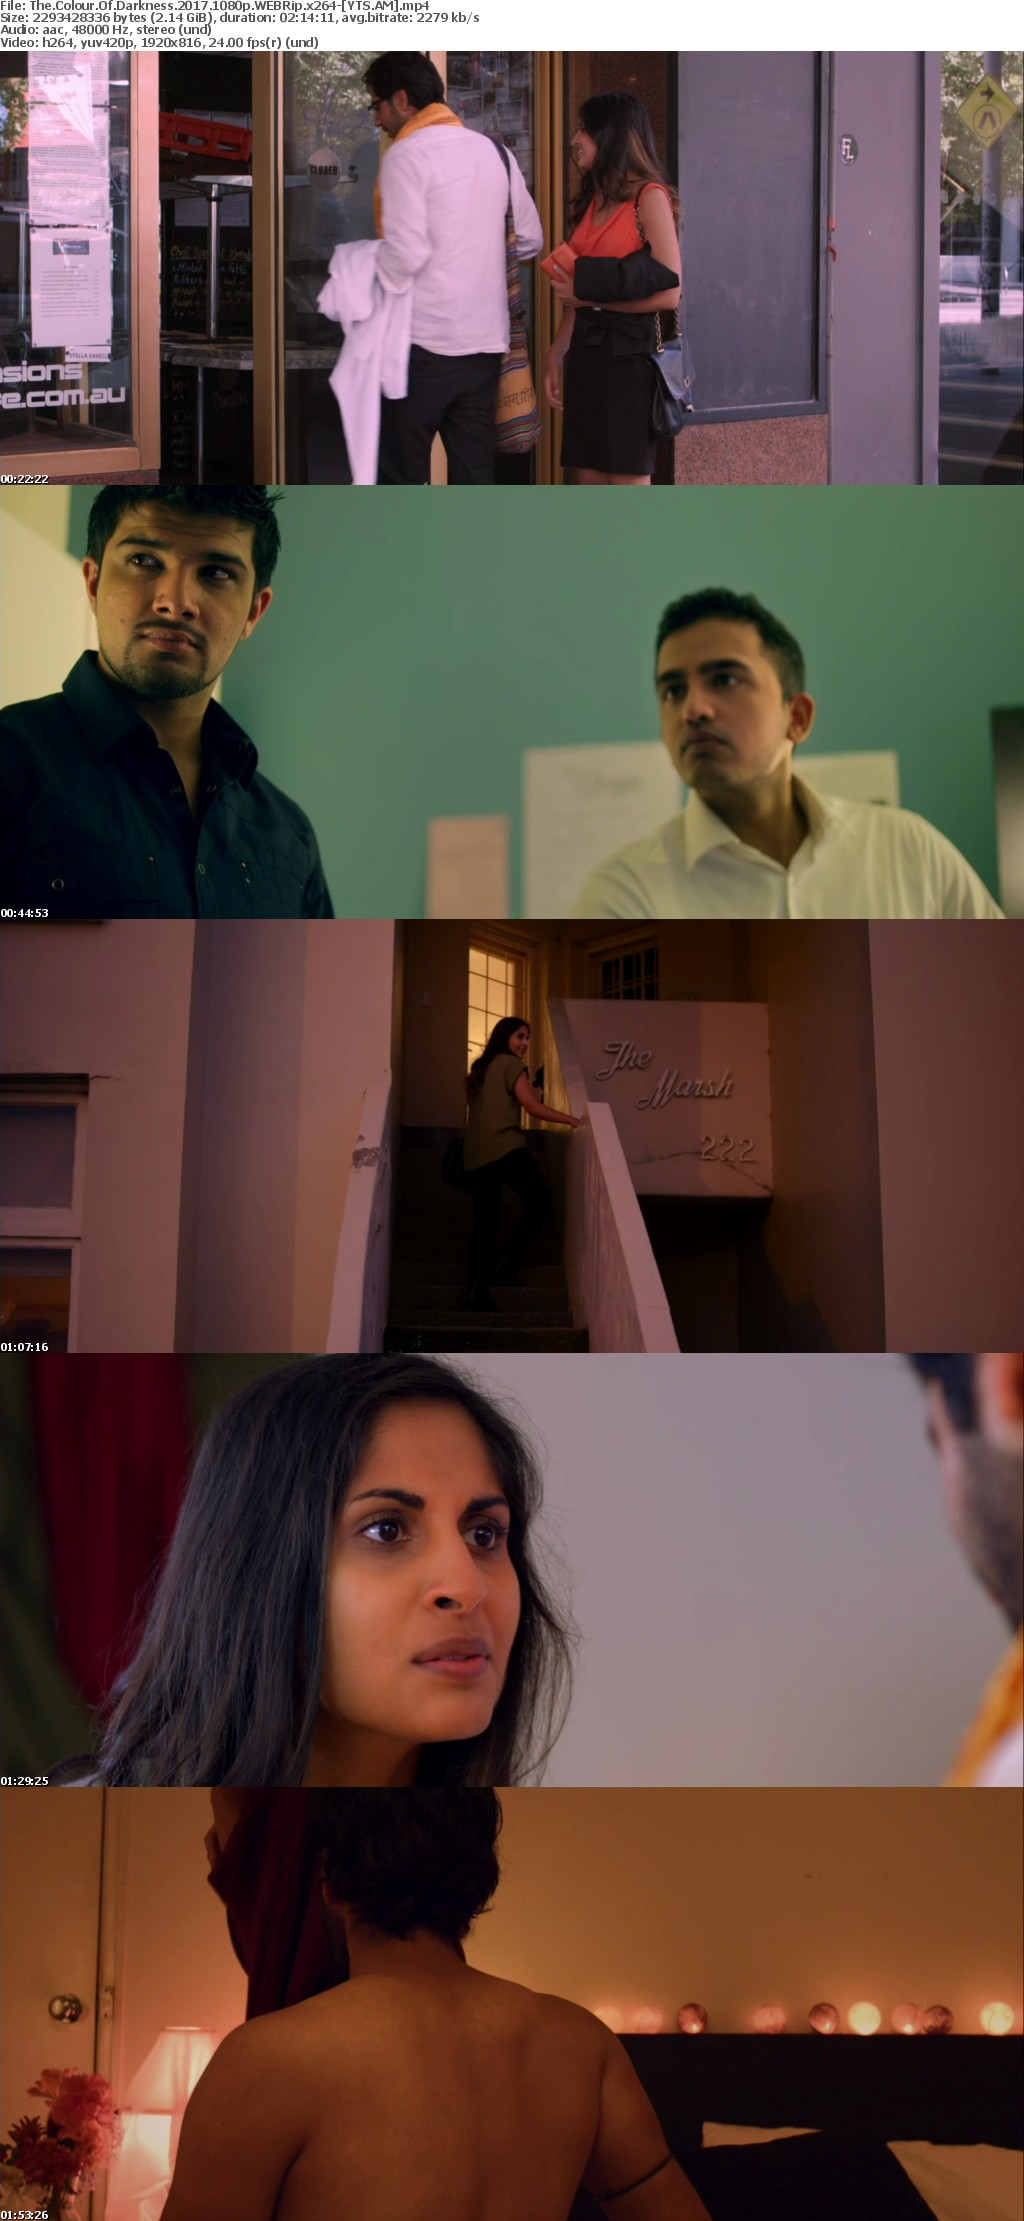 The Colour of Darkness 2017 [WEBRip] [1080p] YIFY